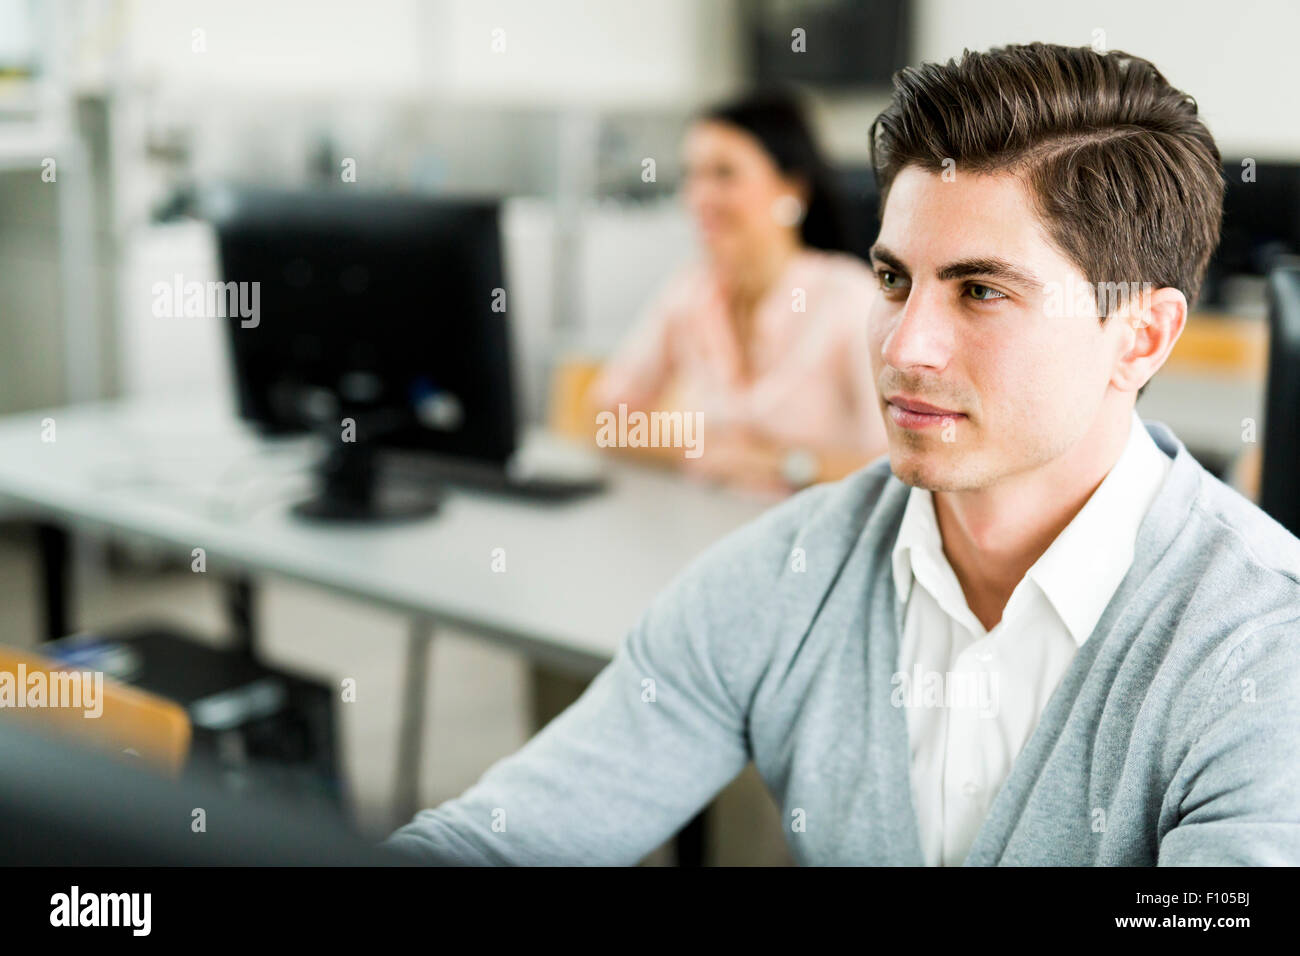 Young handsome man studying information technology in a classroom - Stock Image